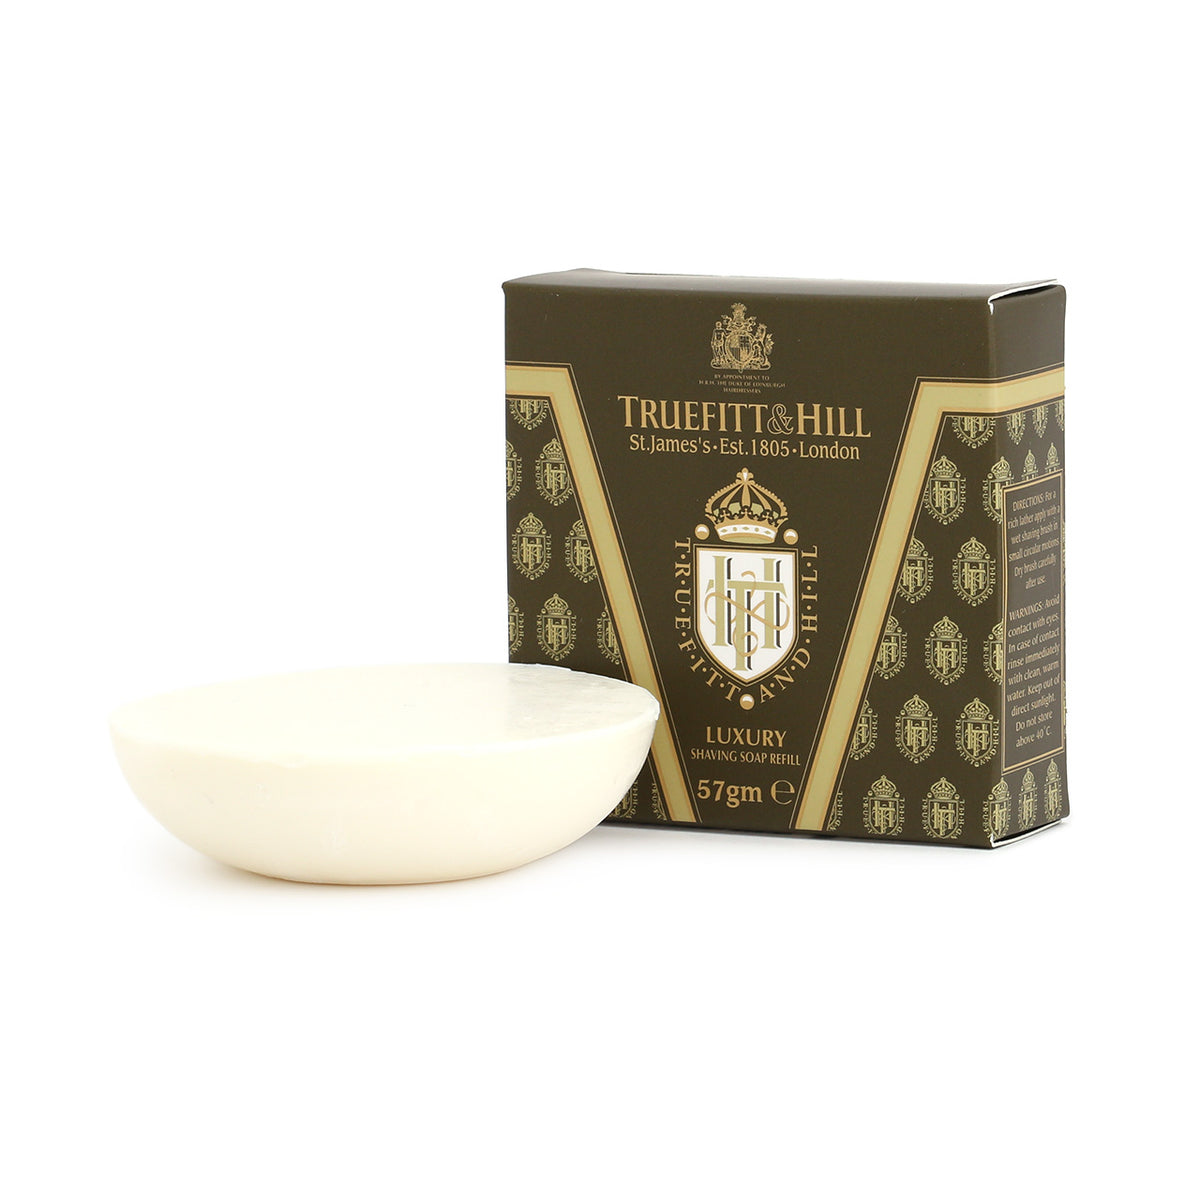 Truefitt & Hill Sandalwood Luxury Shaving Soap - small refill for mug